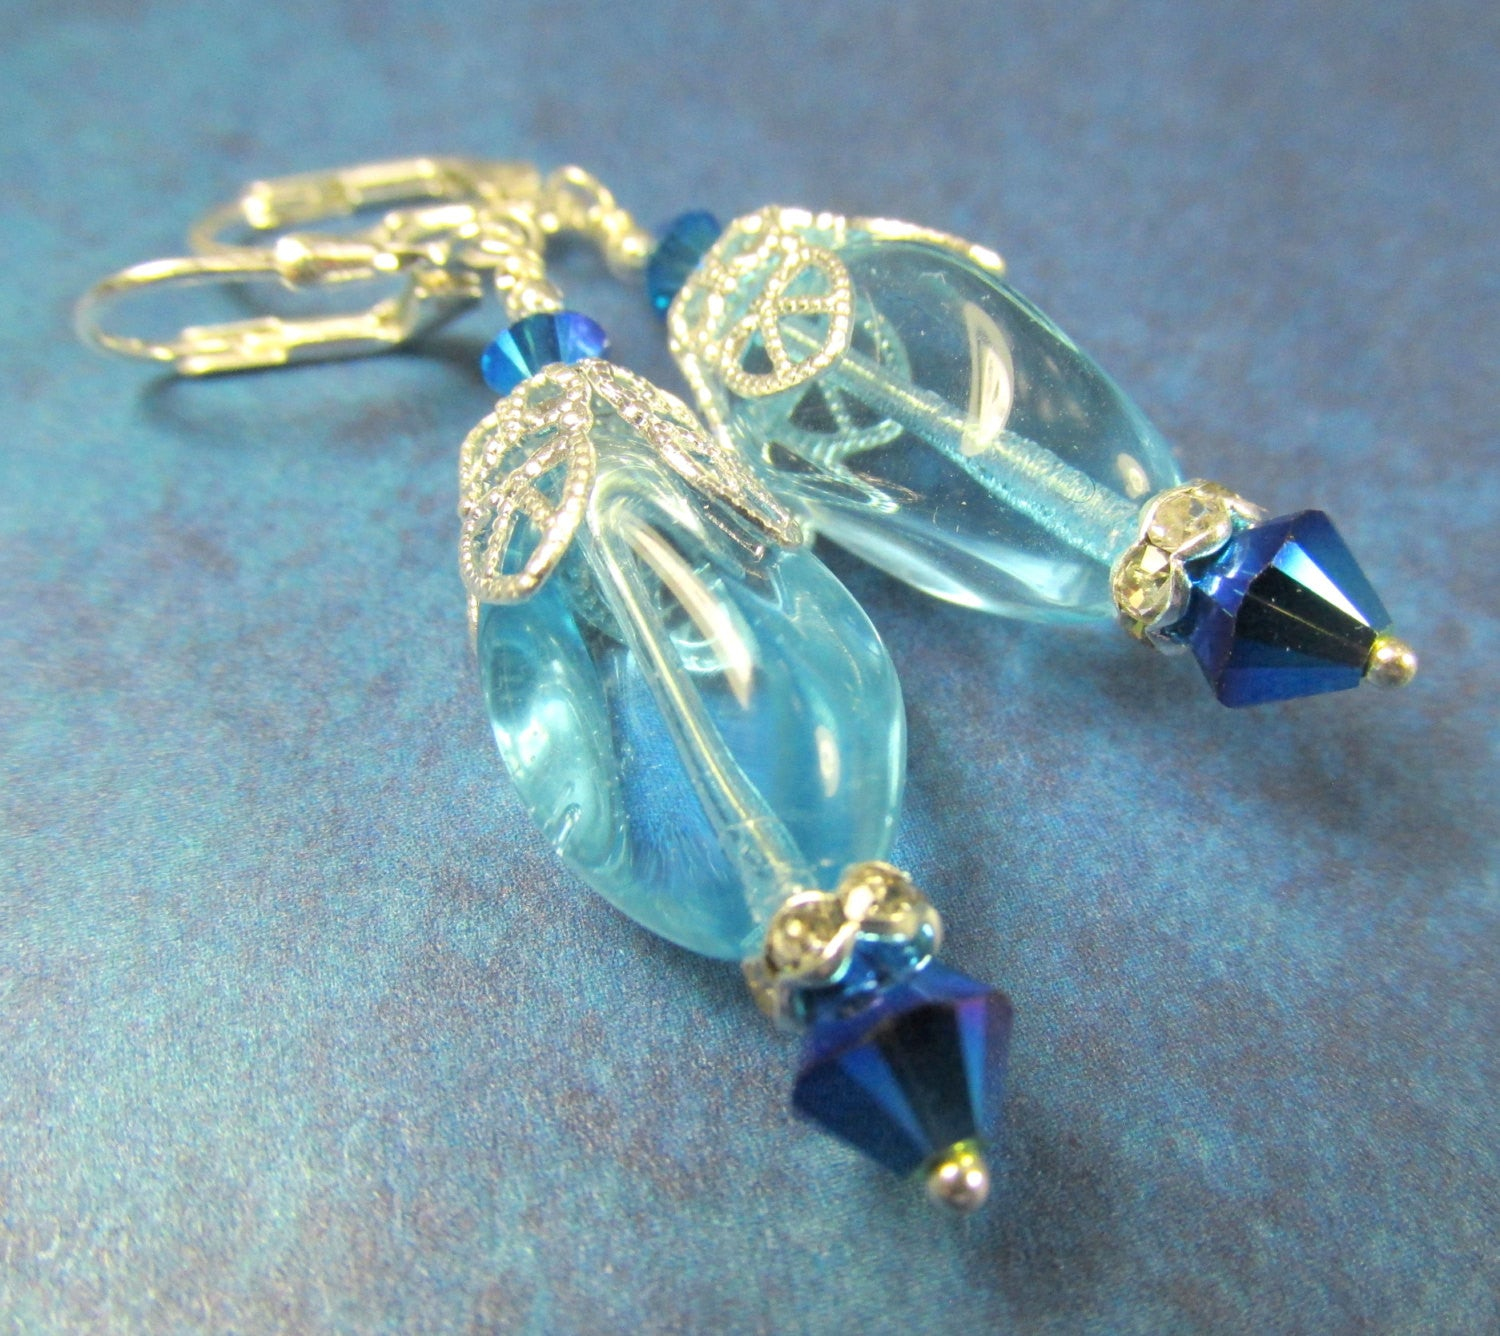 Turquoise Water Glass Drops and Swarovski Royal Blue Crystal Earrings on Sterling Silver Leverbacks - Odyssey Creations